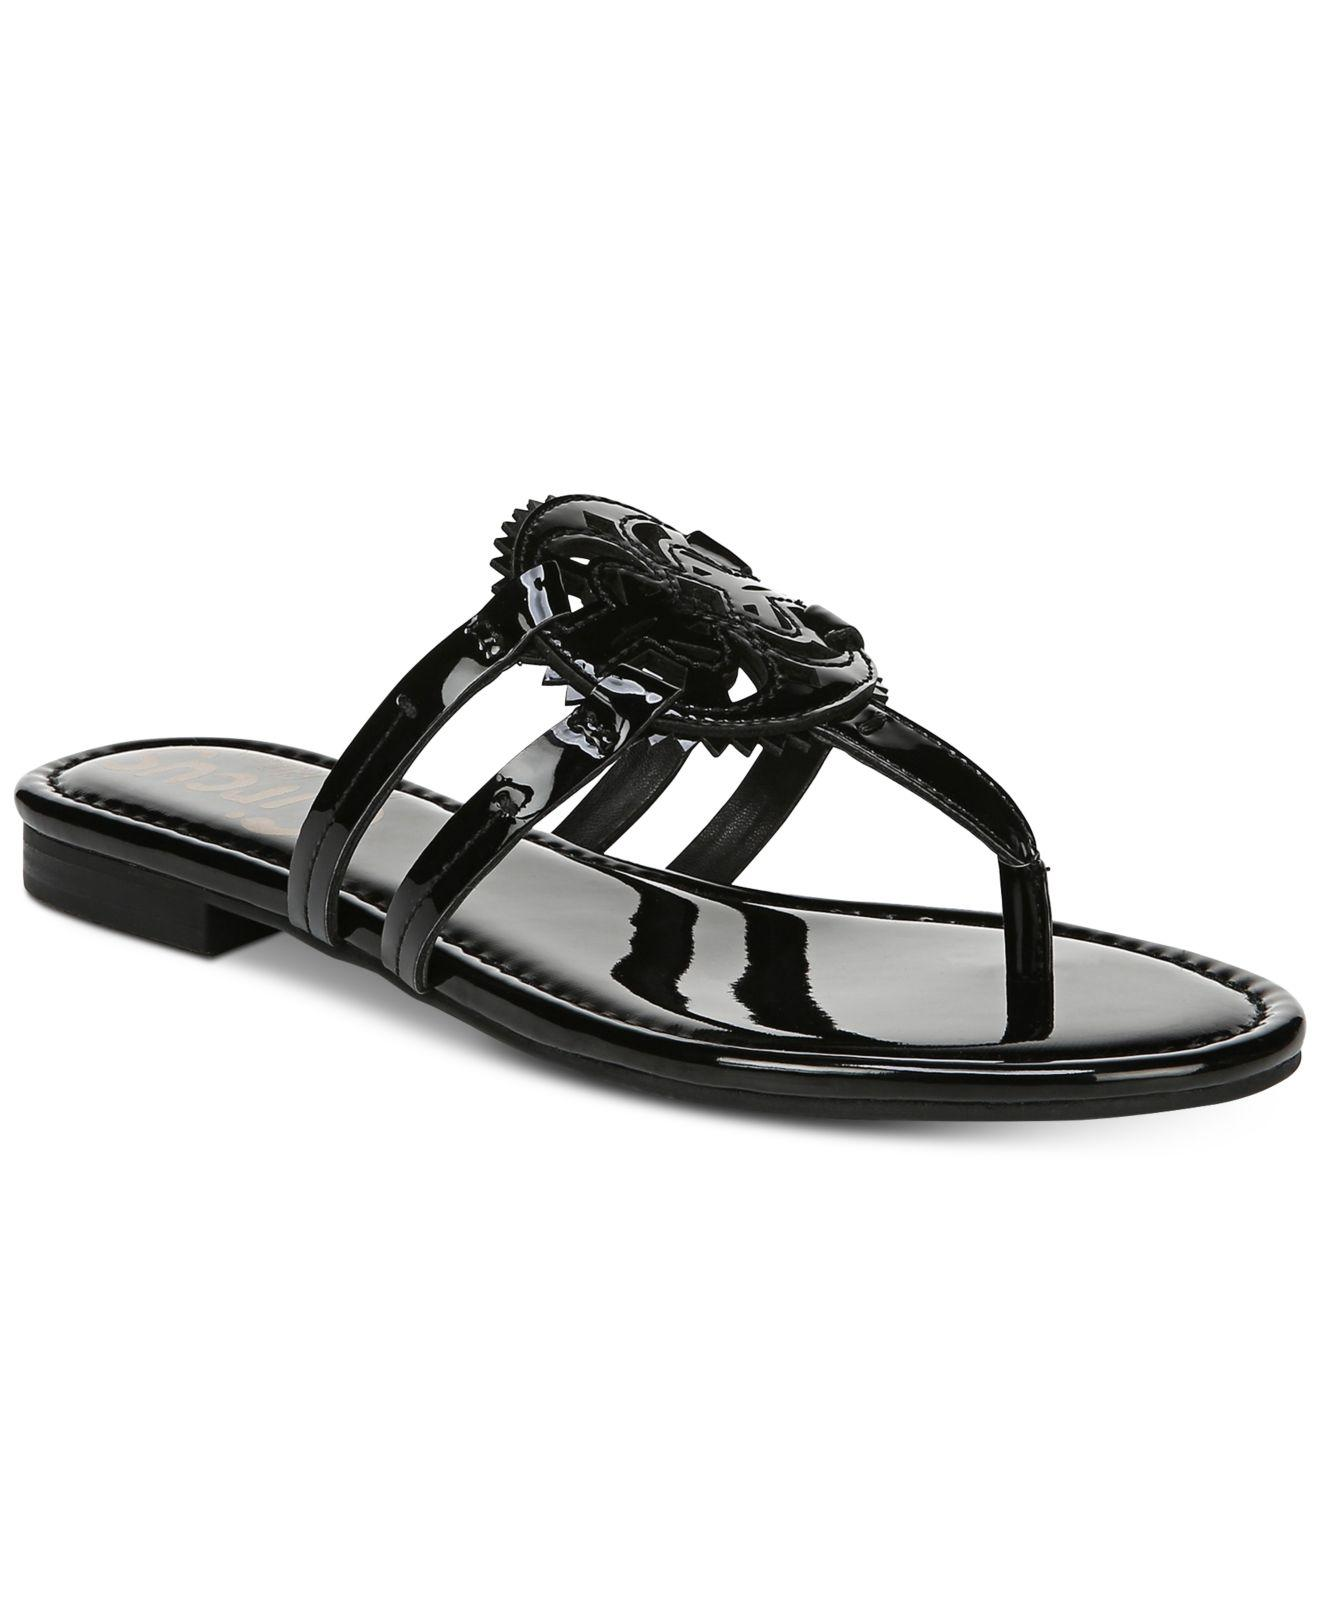 d3f039ab4 Lyst - Circus by Sam Edelman Canyon Medallion Flat Sandals in Black